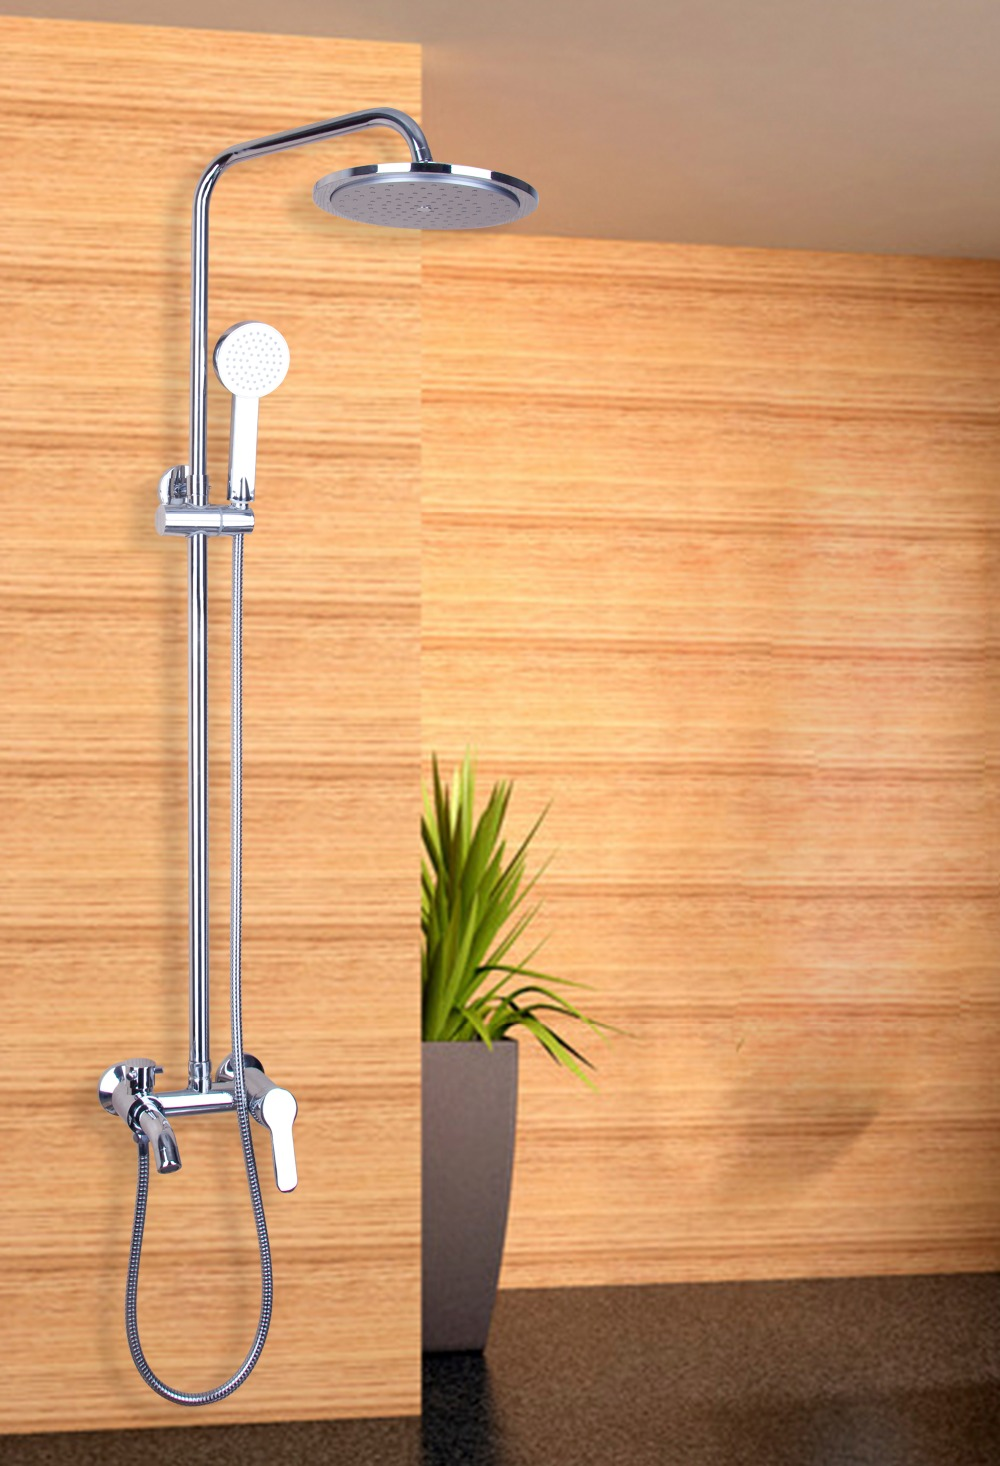 Torayvino Chrome Polished Waterfall Rain Shower Faucet & Hand Shower Wall Mounted Single Handle Bathroom Faucet Mixer Tap free shipping polished chrome finish new wall mounted waterfall bathroom bathtub handheld shower tap mixer faucet yt 5330